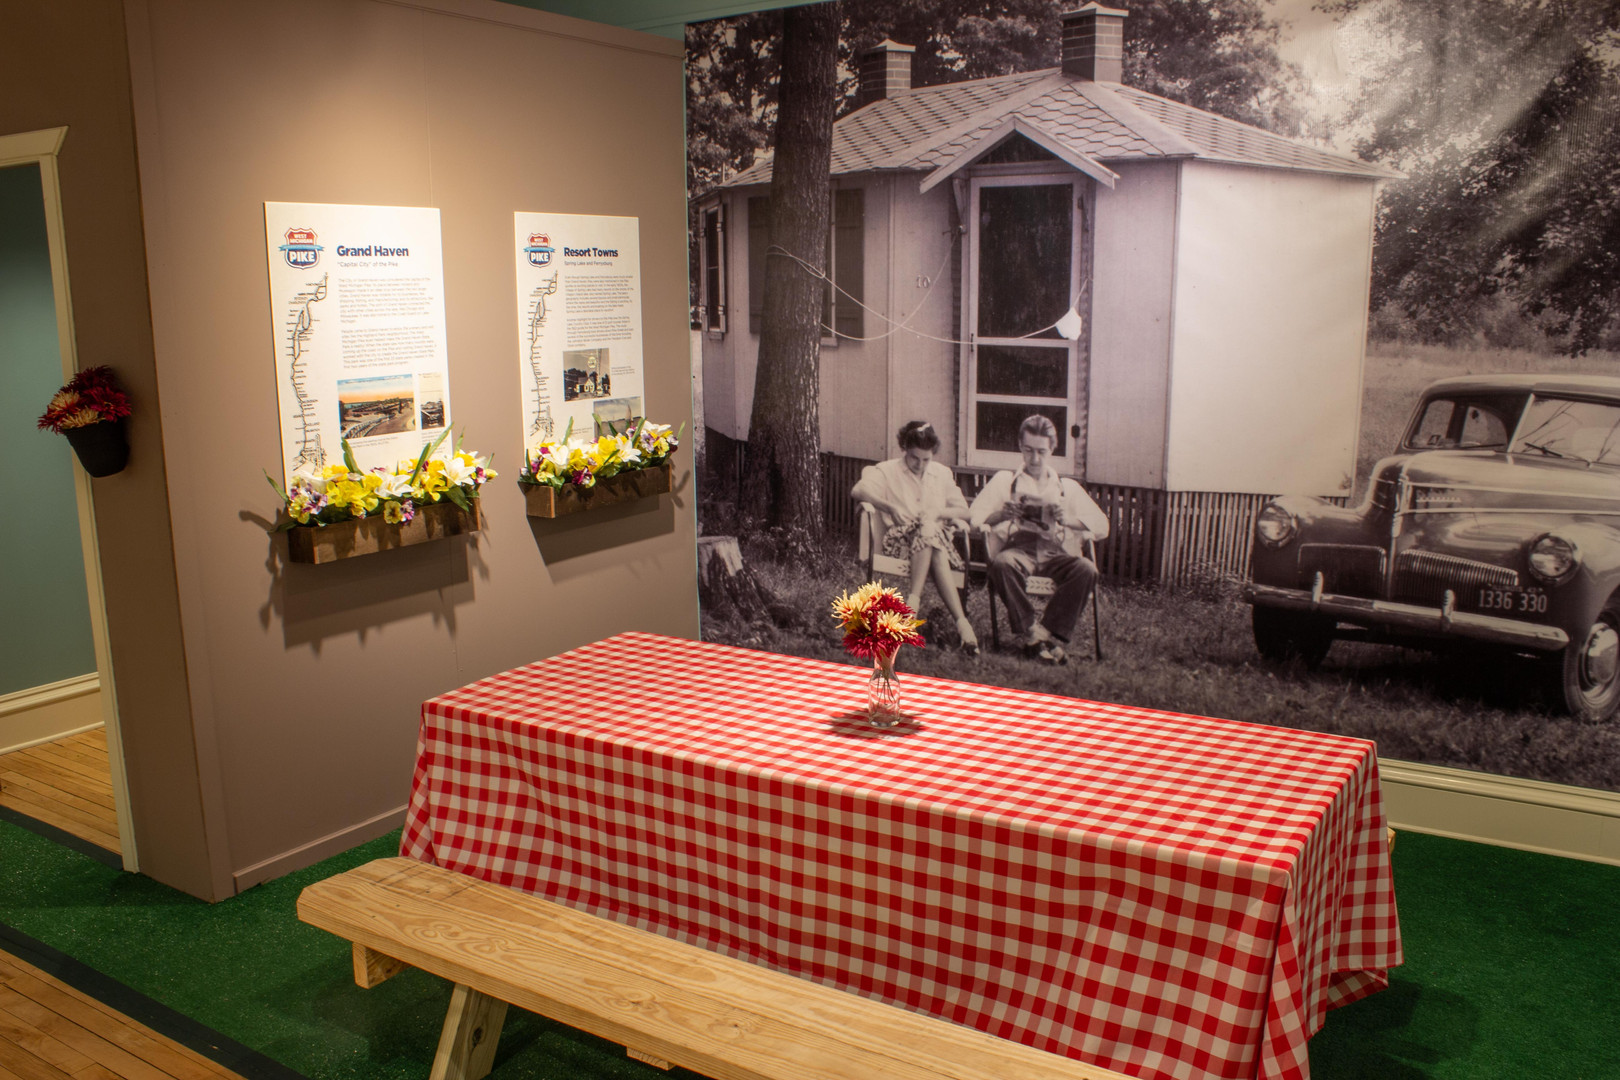 TCHM Exhibit 51.JPG - photograph of the side of the fake cabin and the prop picnic area. On the left side of the photograph is the fake cabin, with two panels mounted on the side and flower boxes hung beneath the panels. In the center is a large wooden picnic table with a red and white checkered tablecloth. Underneath the picnic table is bright green astroturf. Behind the picnic table is a large black and white photo mural of a man and a woman sitting outside a cabin in lawn chairs. Next to them is a vintage car.